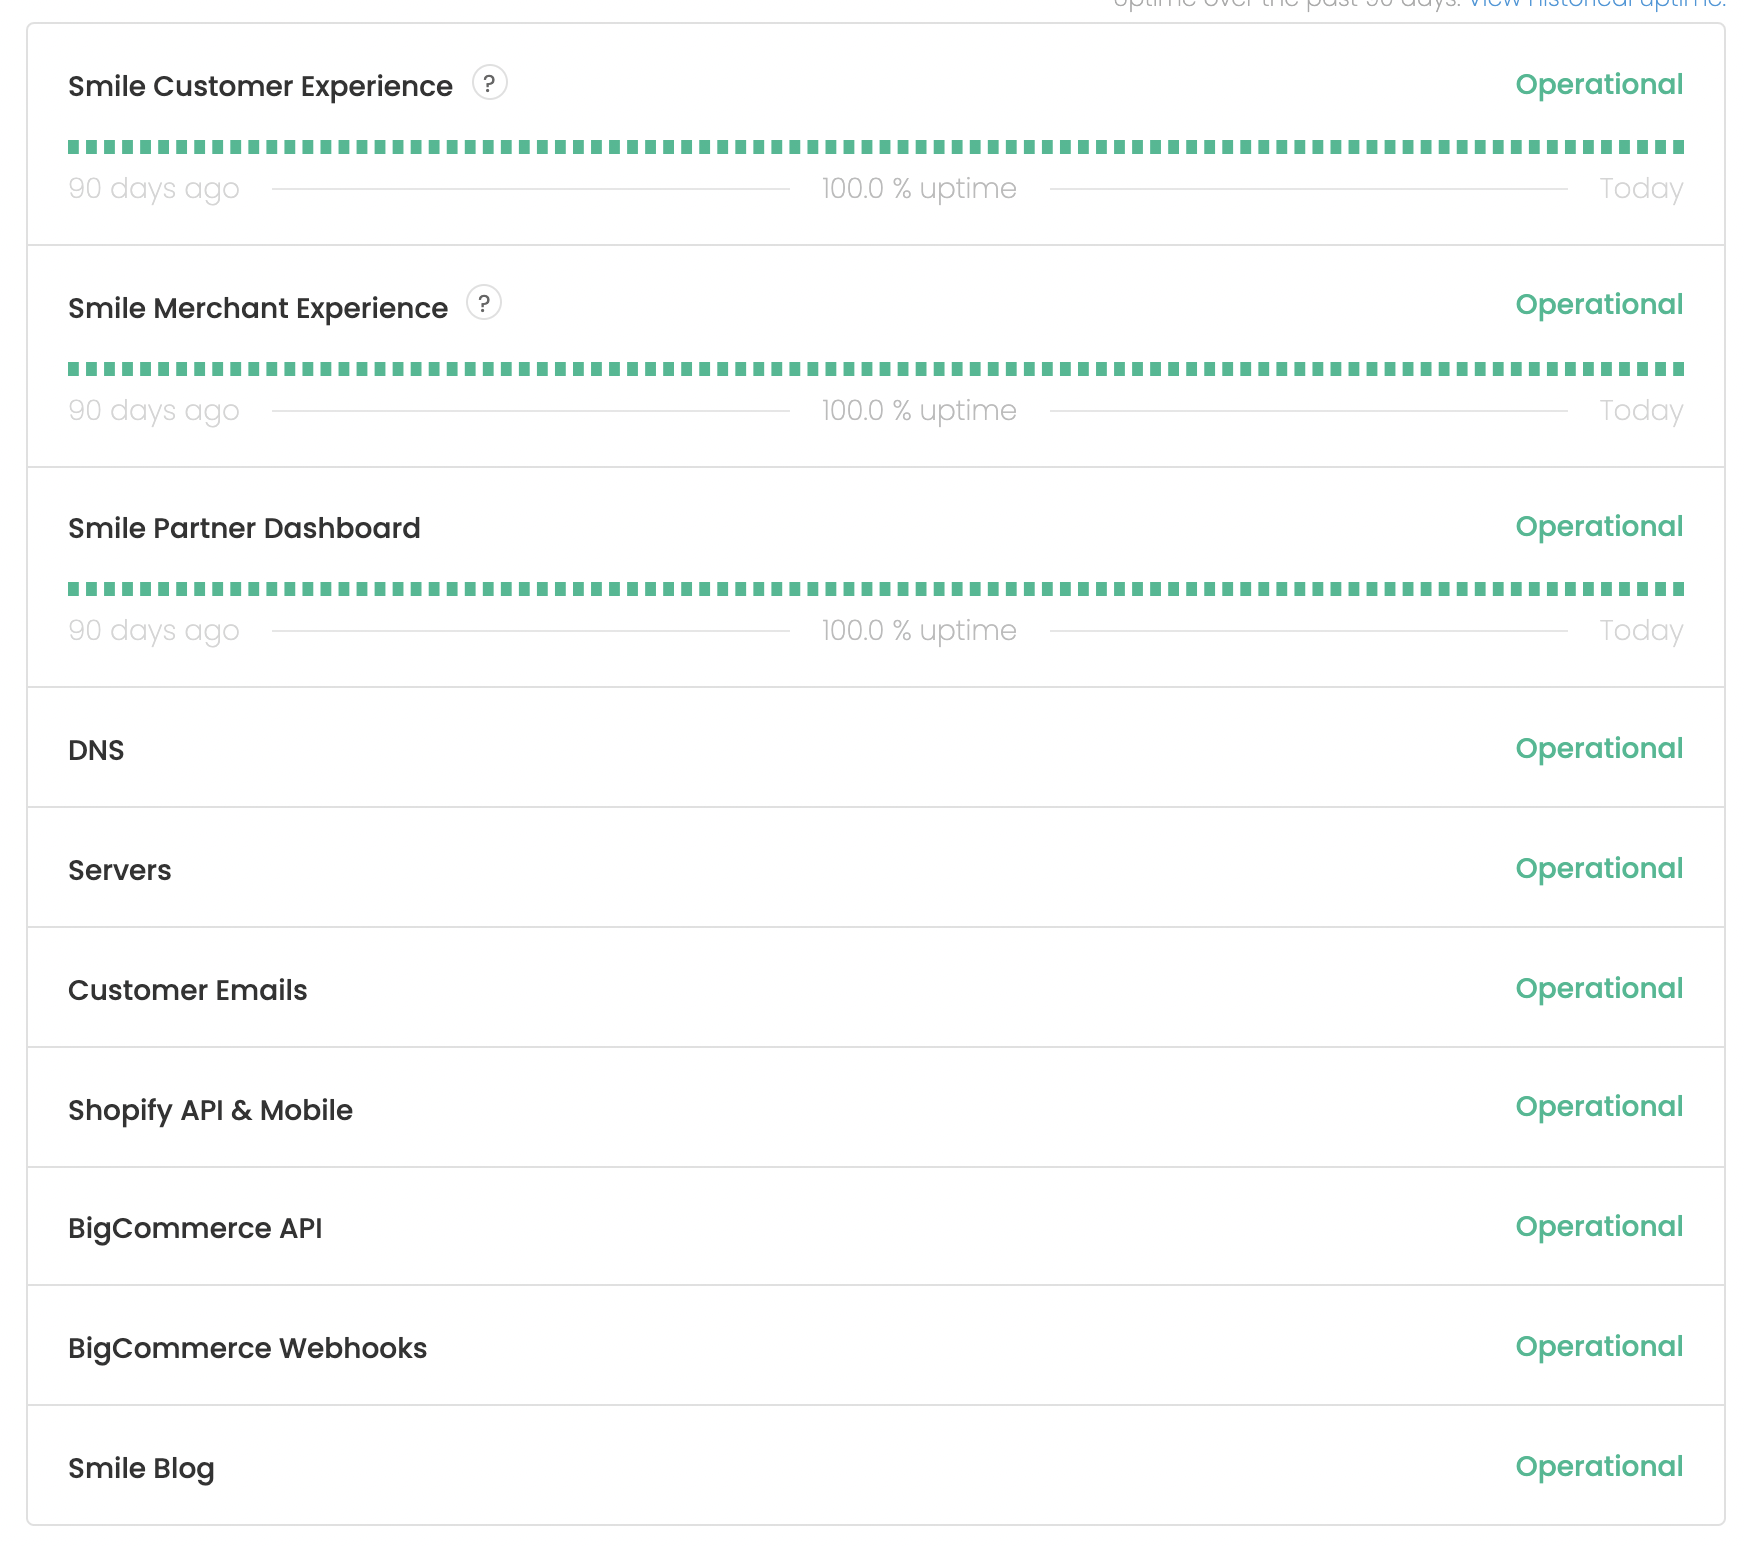 image of each section of the status page noting everything is operational